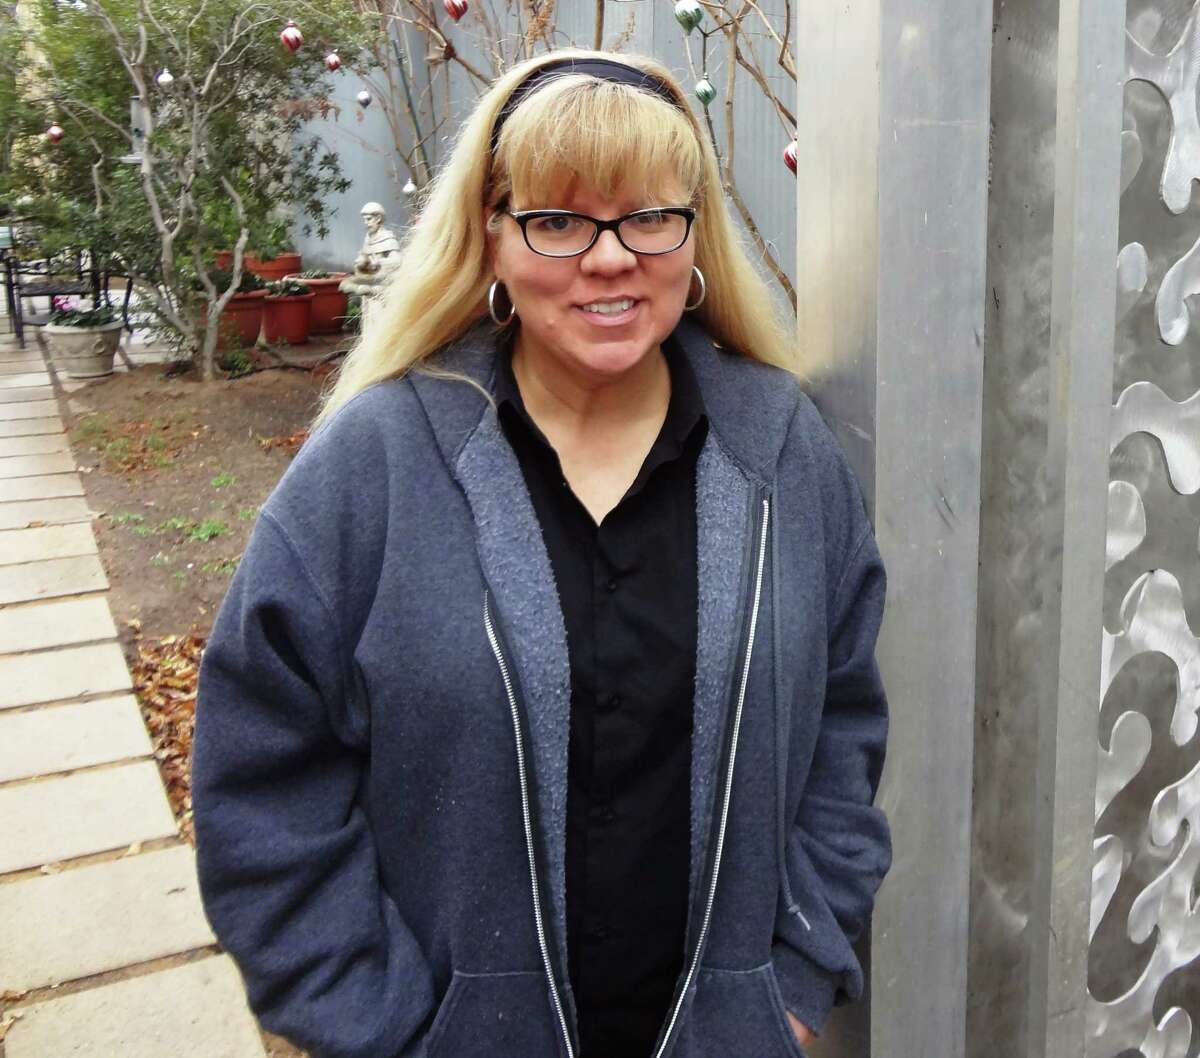 """A city art official said of Cakky Brawley: """"She has a great understanding of how sculpture can enhance architecture."""""""